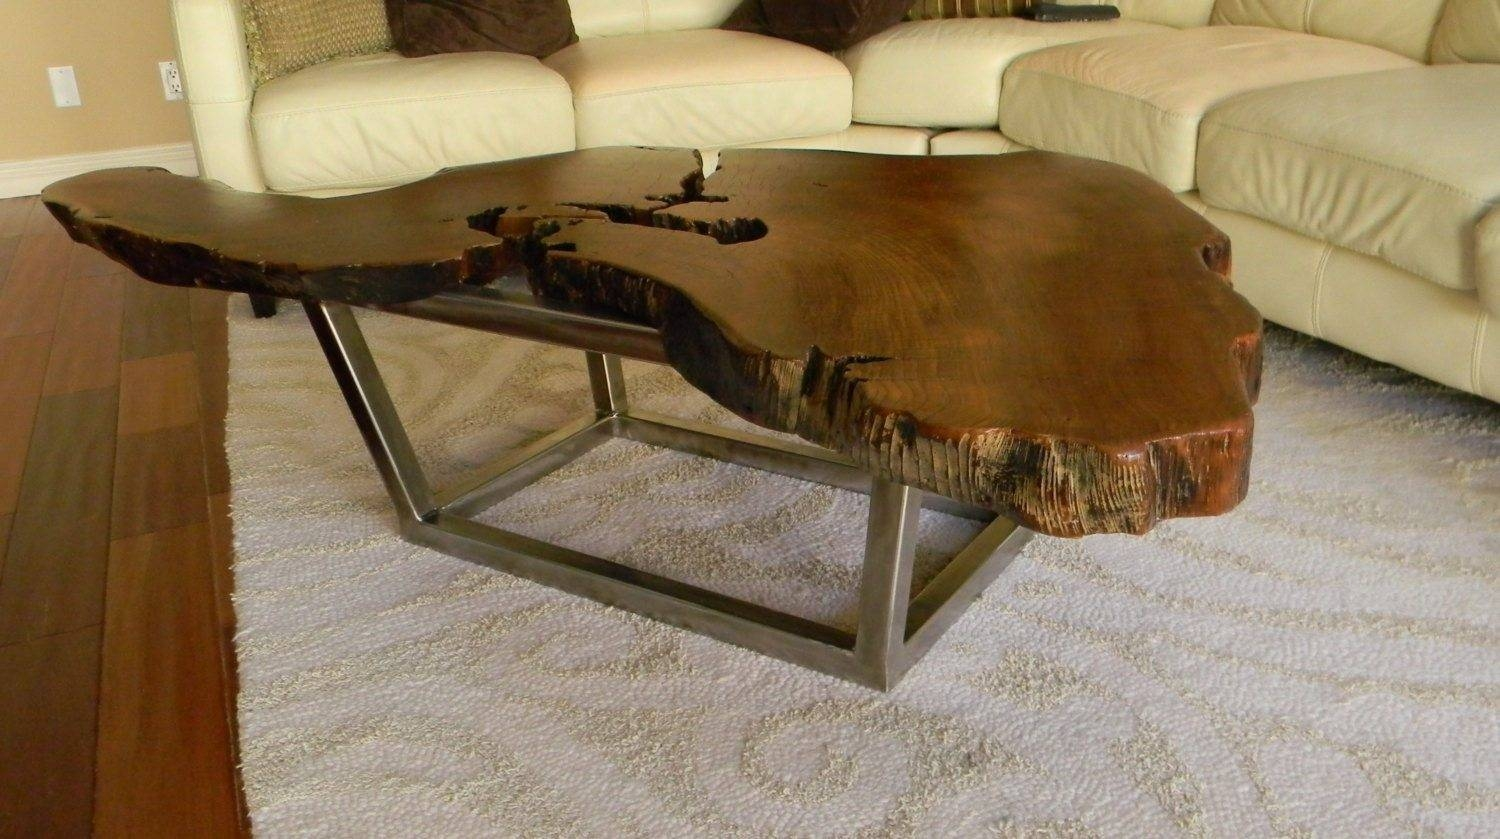 Living Room Rustic Style Coffee Table - Rustic Style Coffee Table pertaining to Rustic Style Coffee Tables (Image 25 of 30)